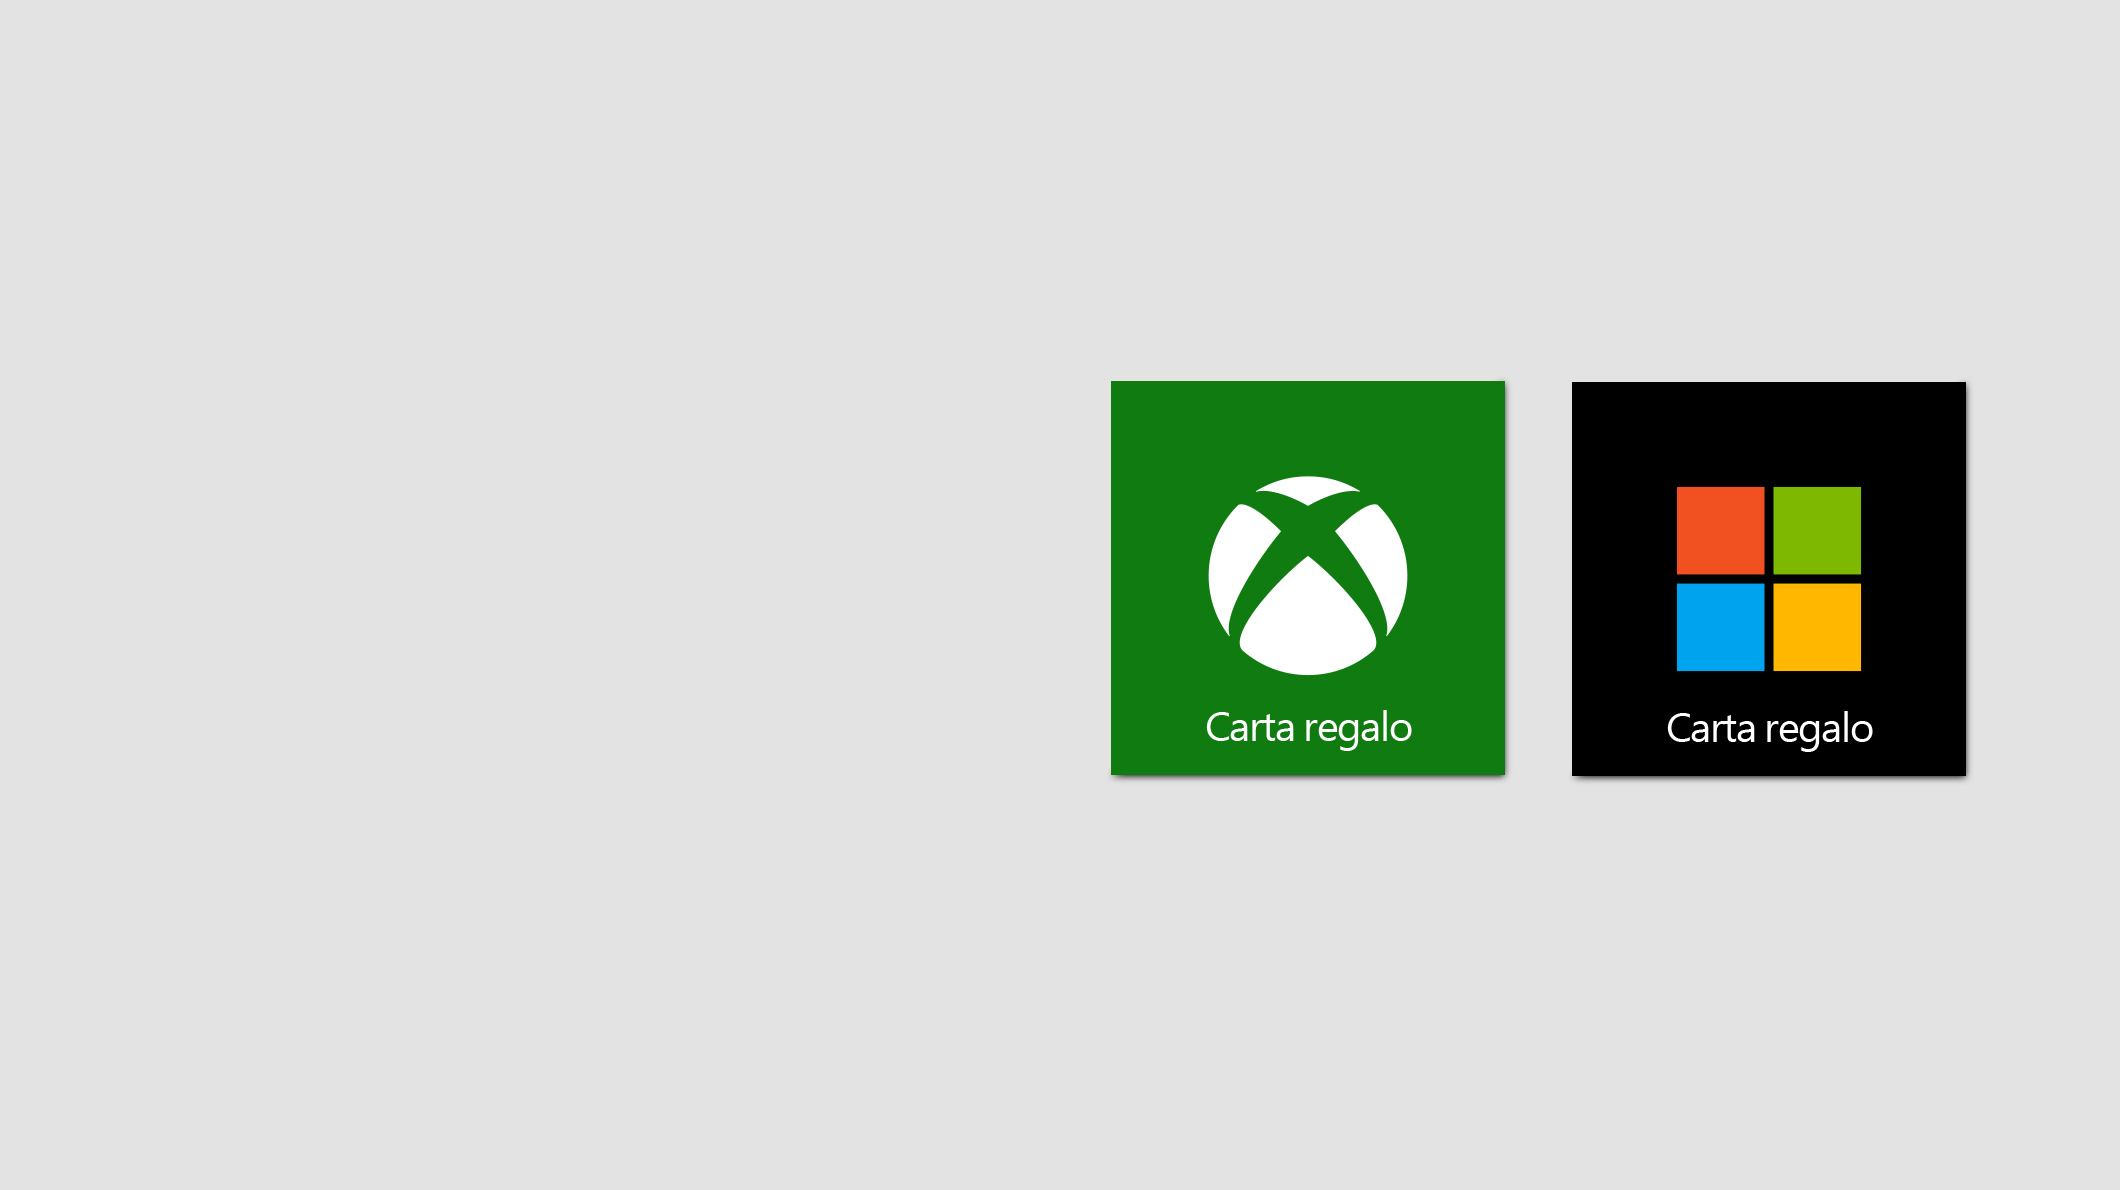 Microsoft giftcard, xbox giftcard